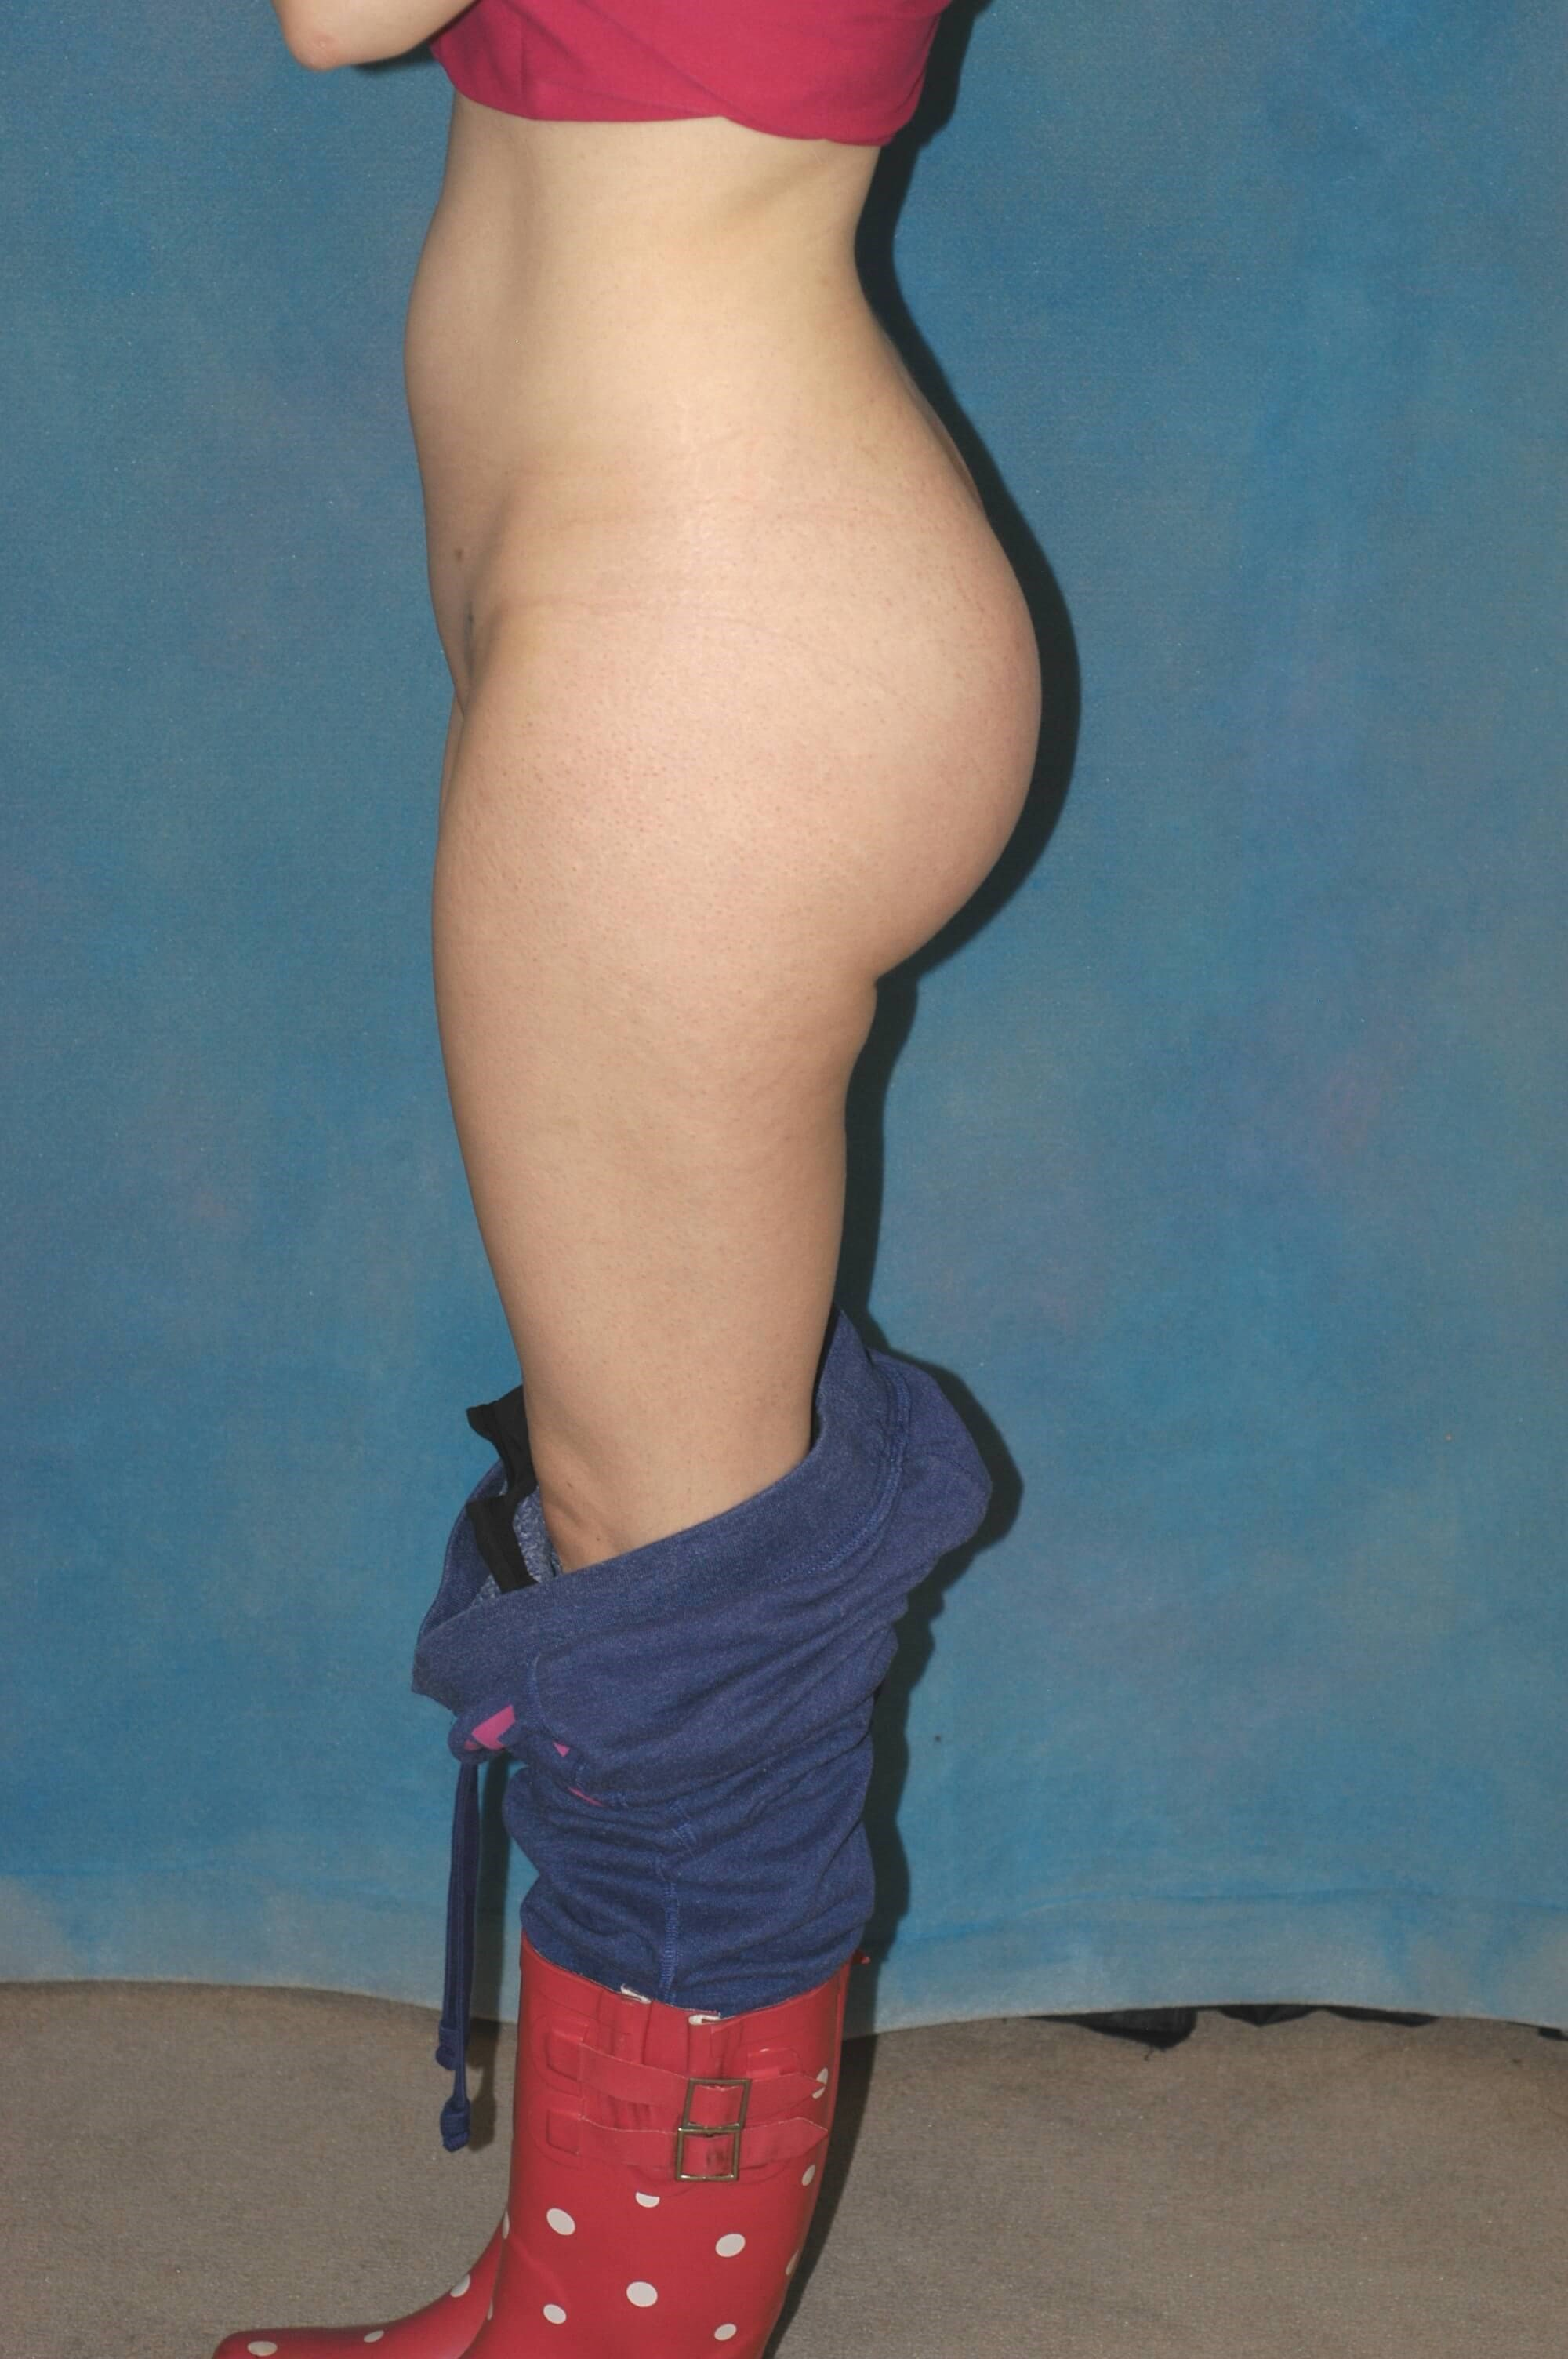 Profile View - Butt Implants After